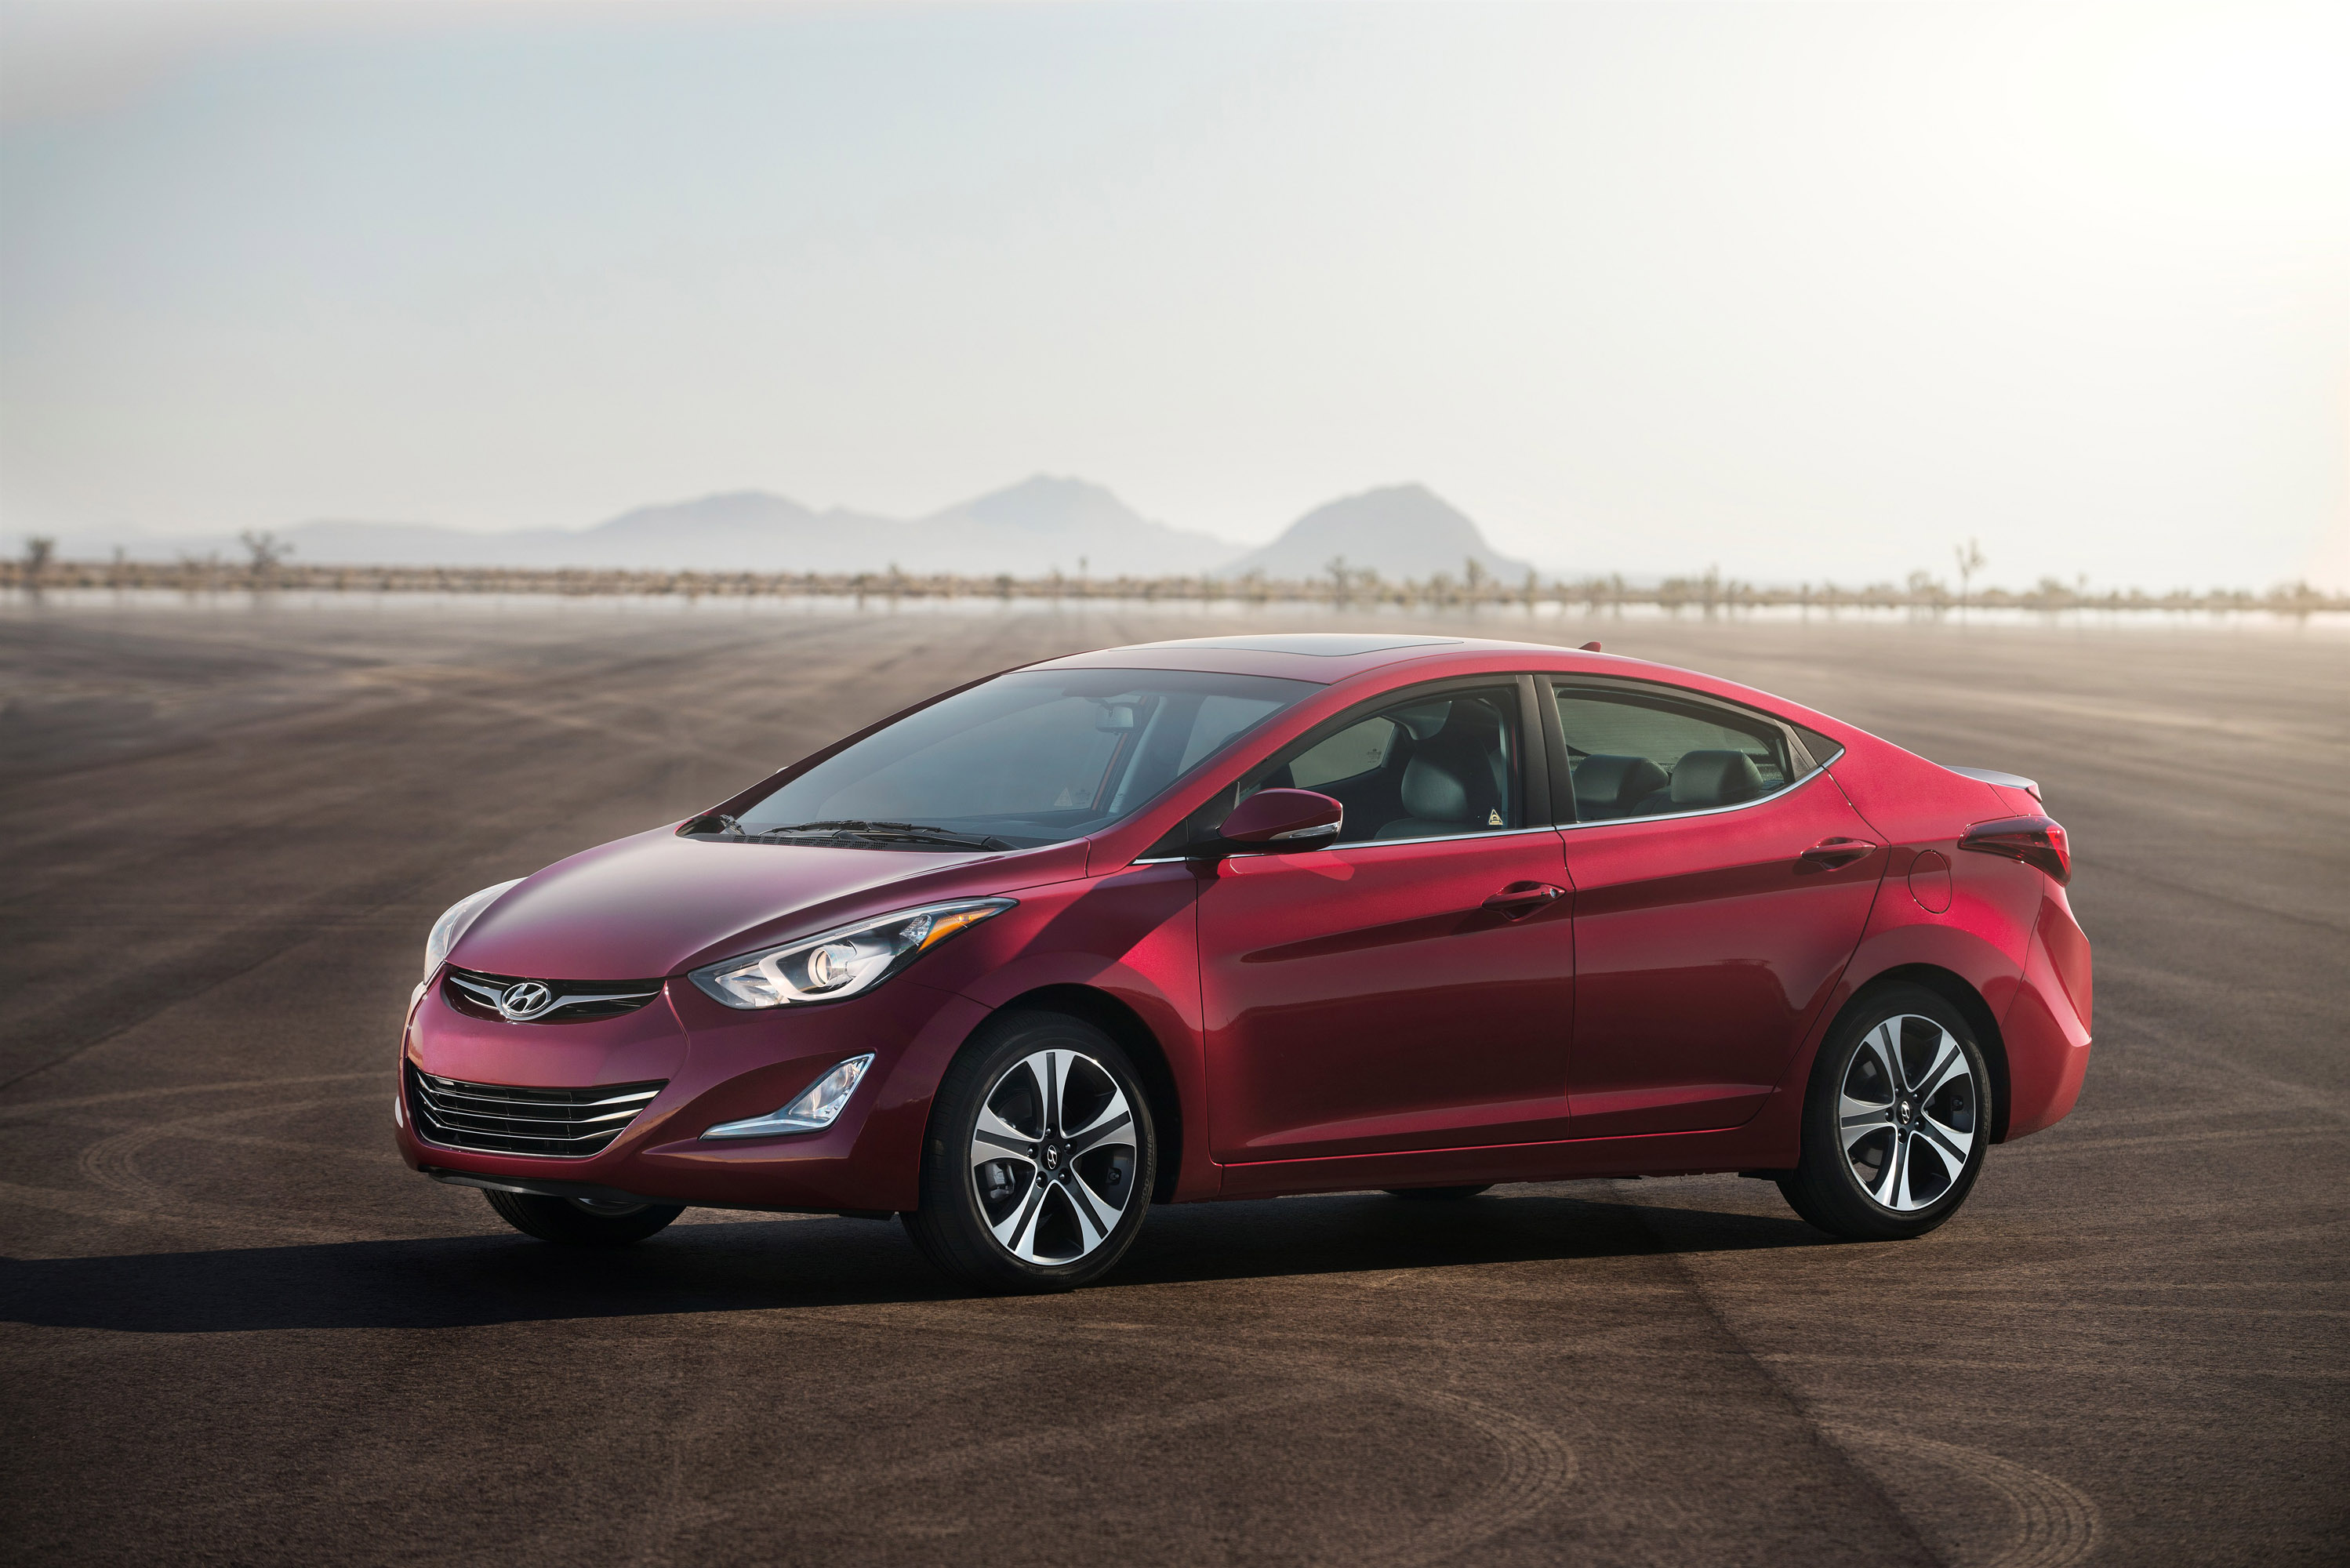 hyundai elantra reaches 10 million unit milestone. Black Bedroom Furniture Sets. Home Design Ideas